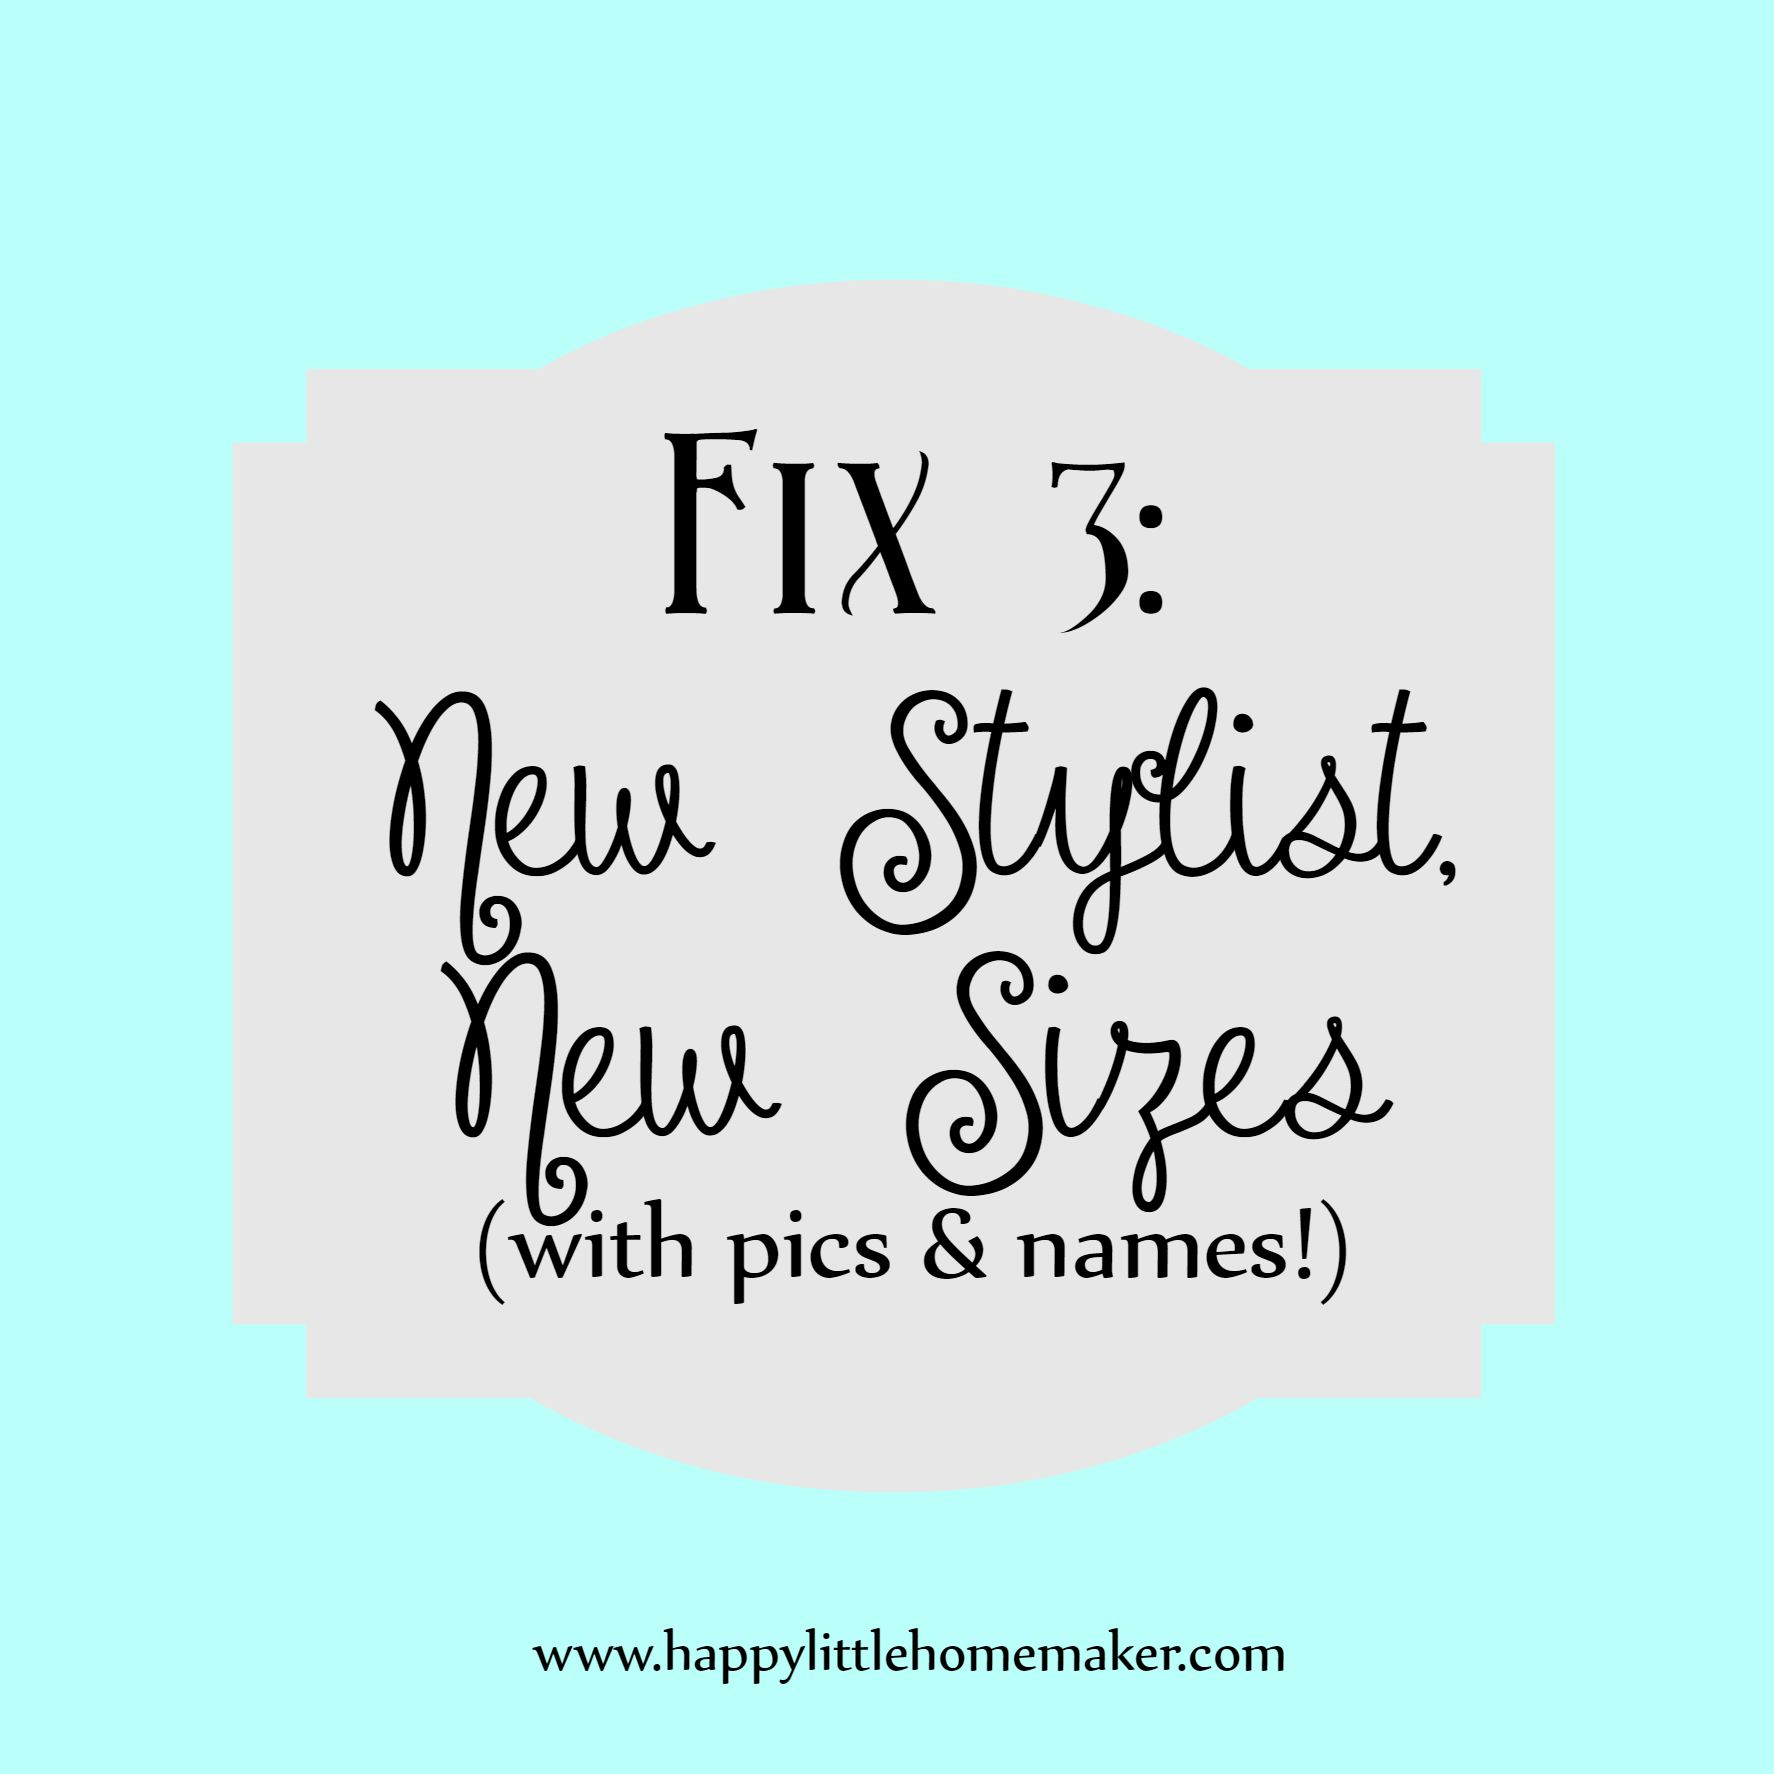 StitchFix 3 revealed with pics and names